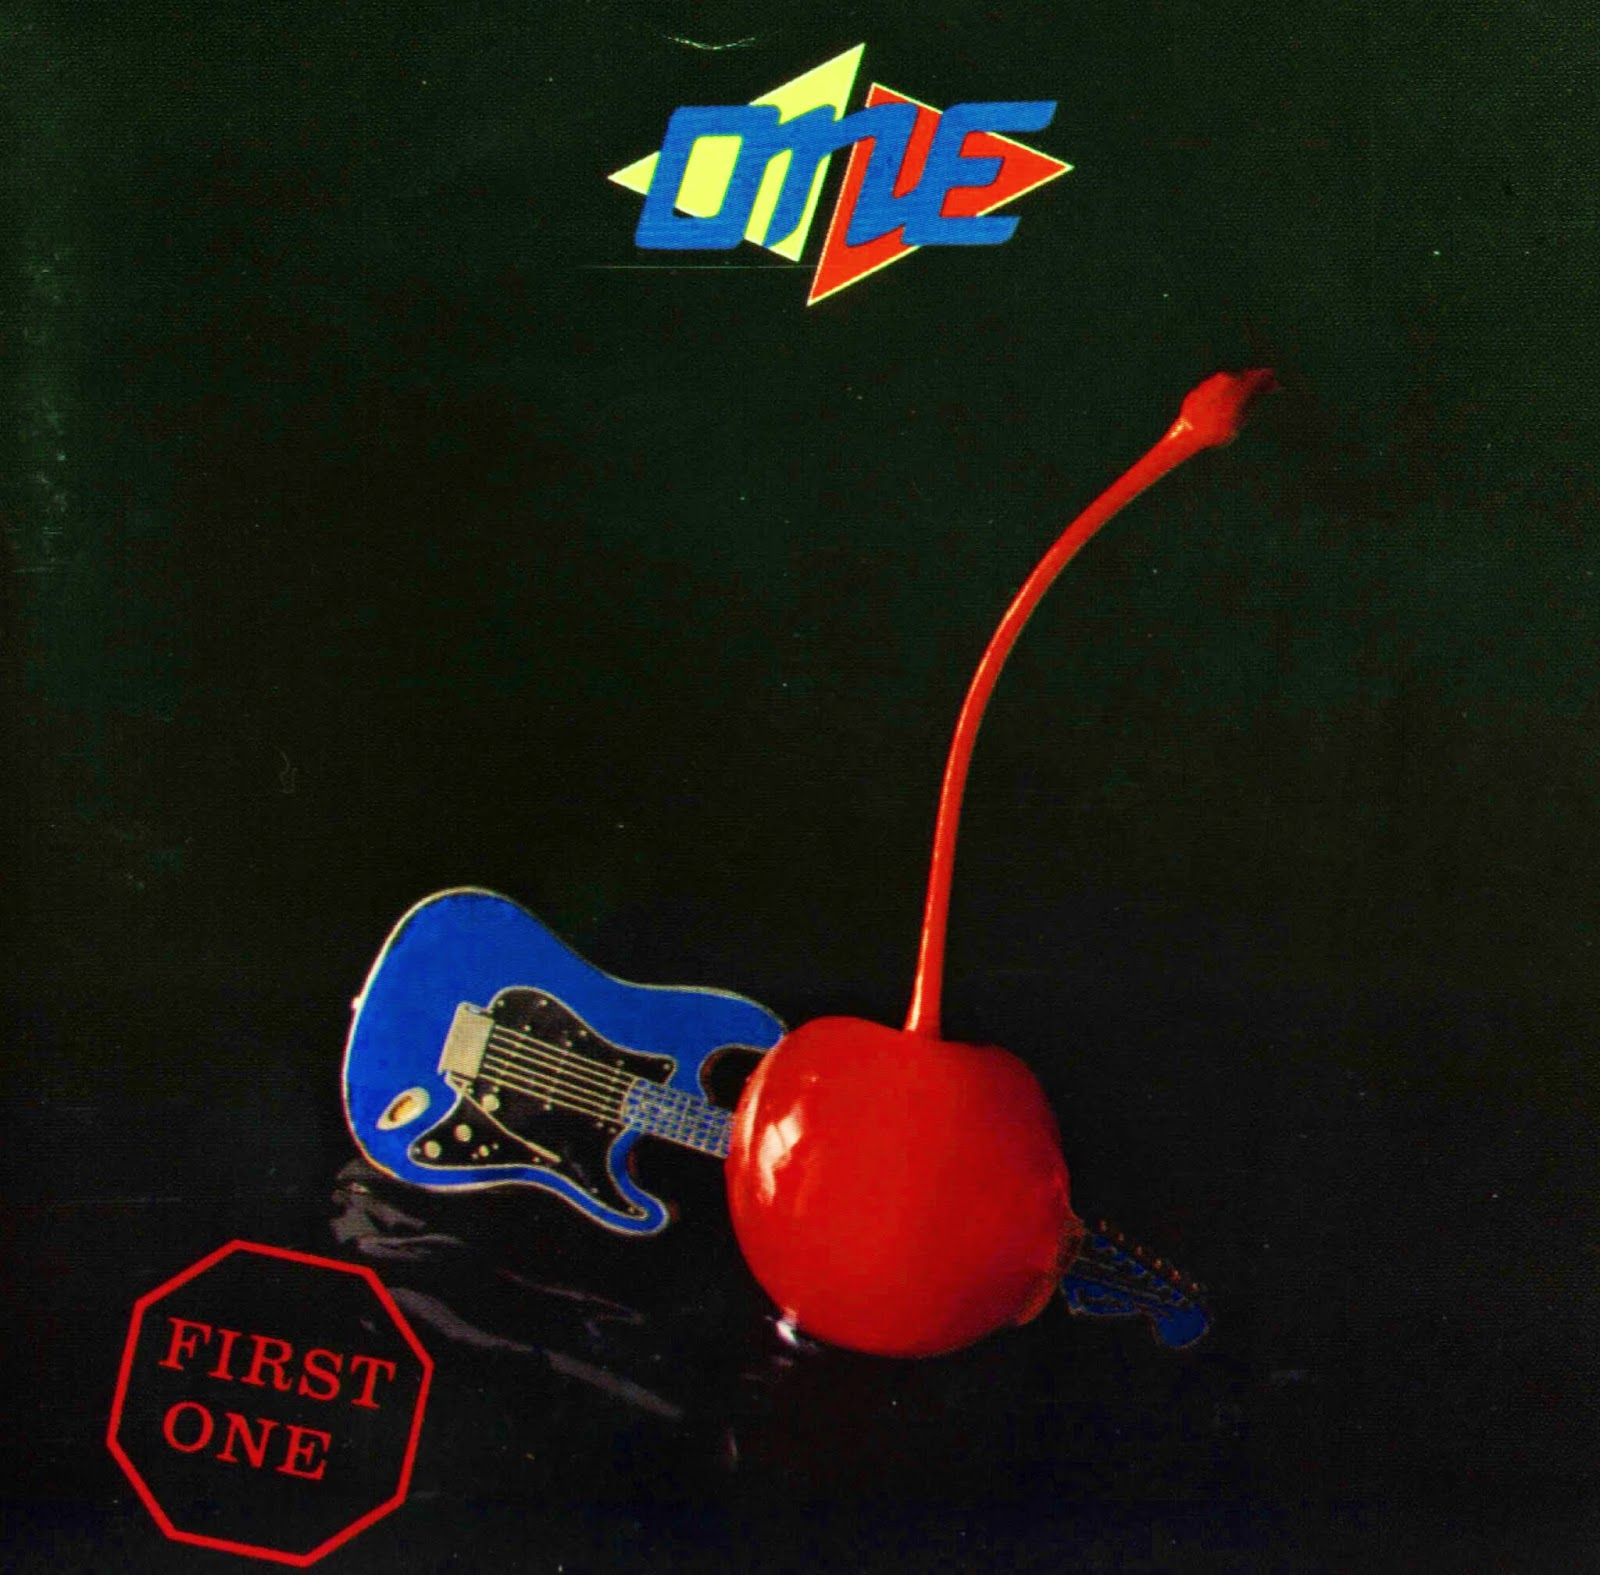 One First one 1987 aor melodic rock